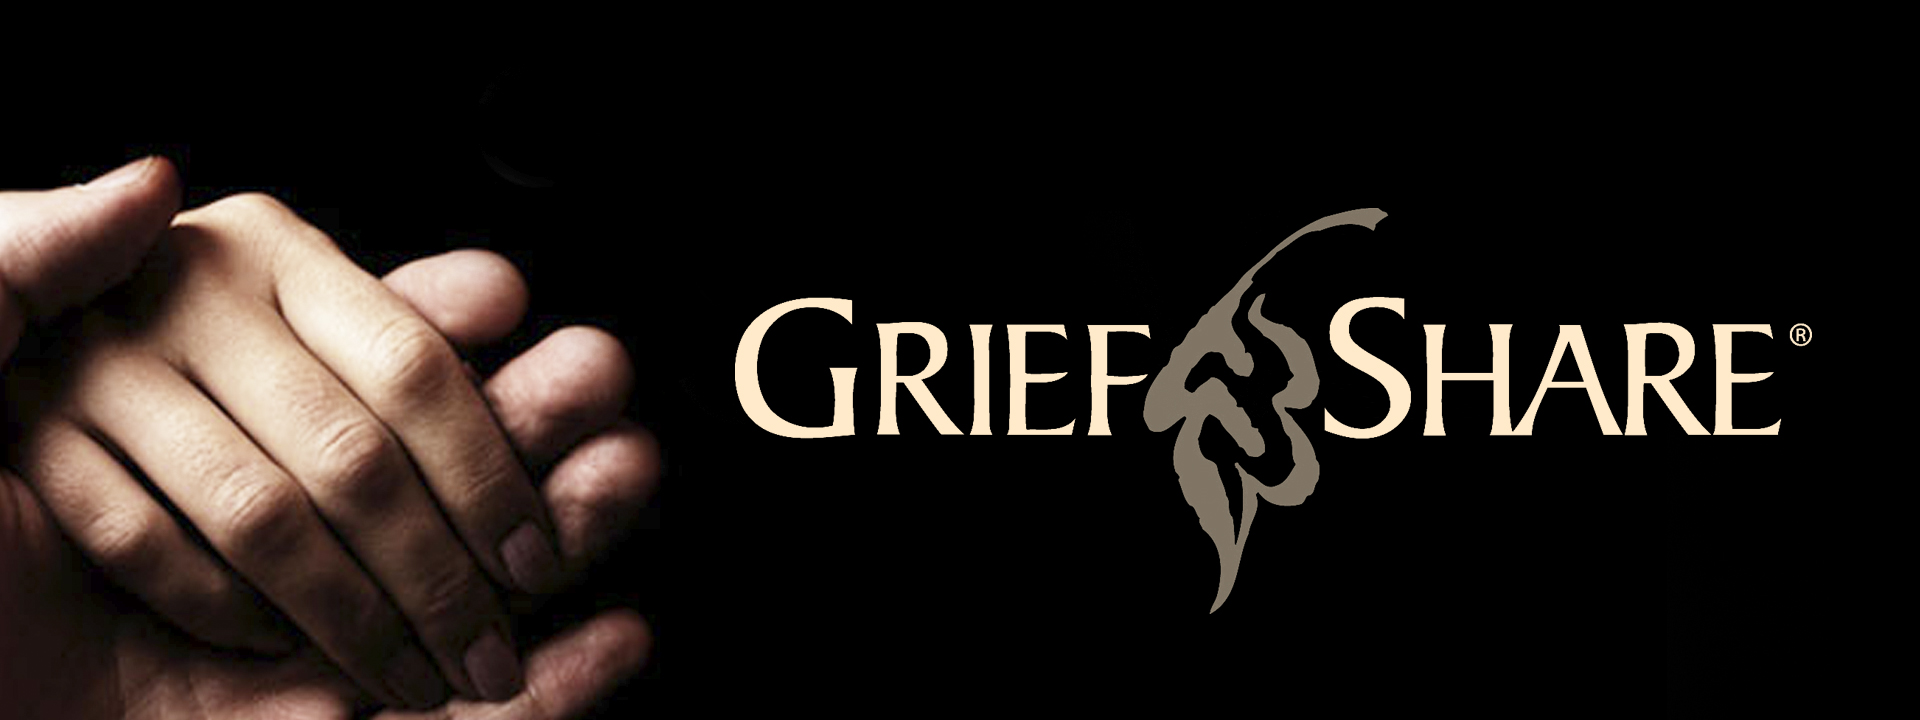 Grief Share4